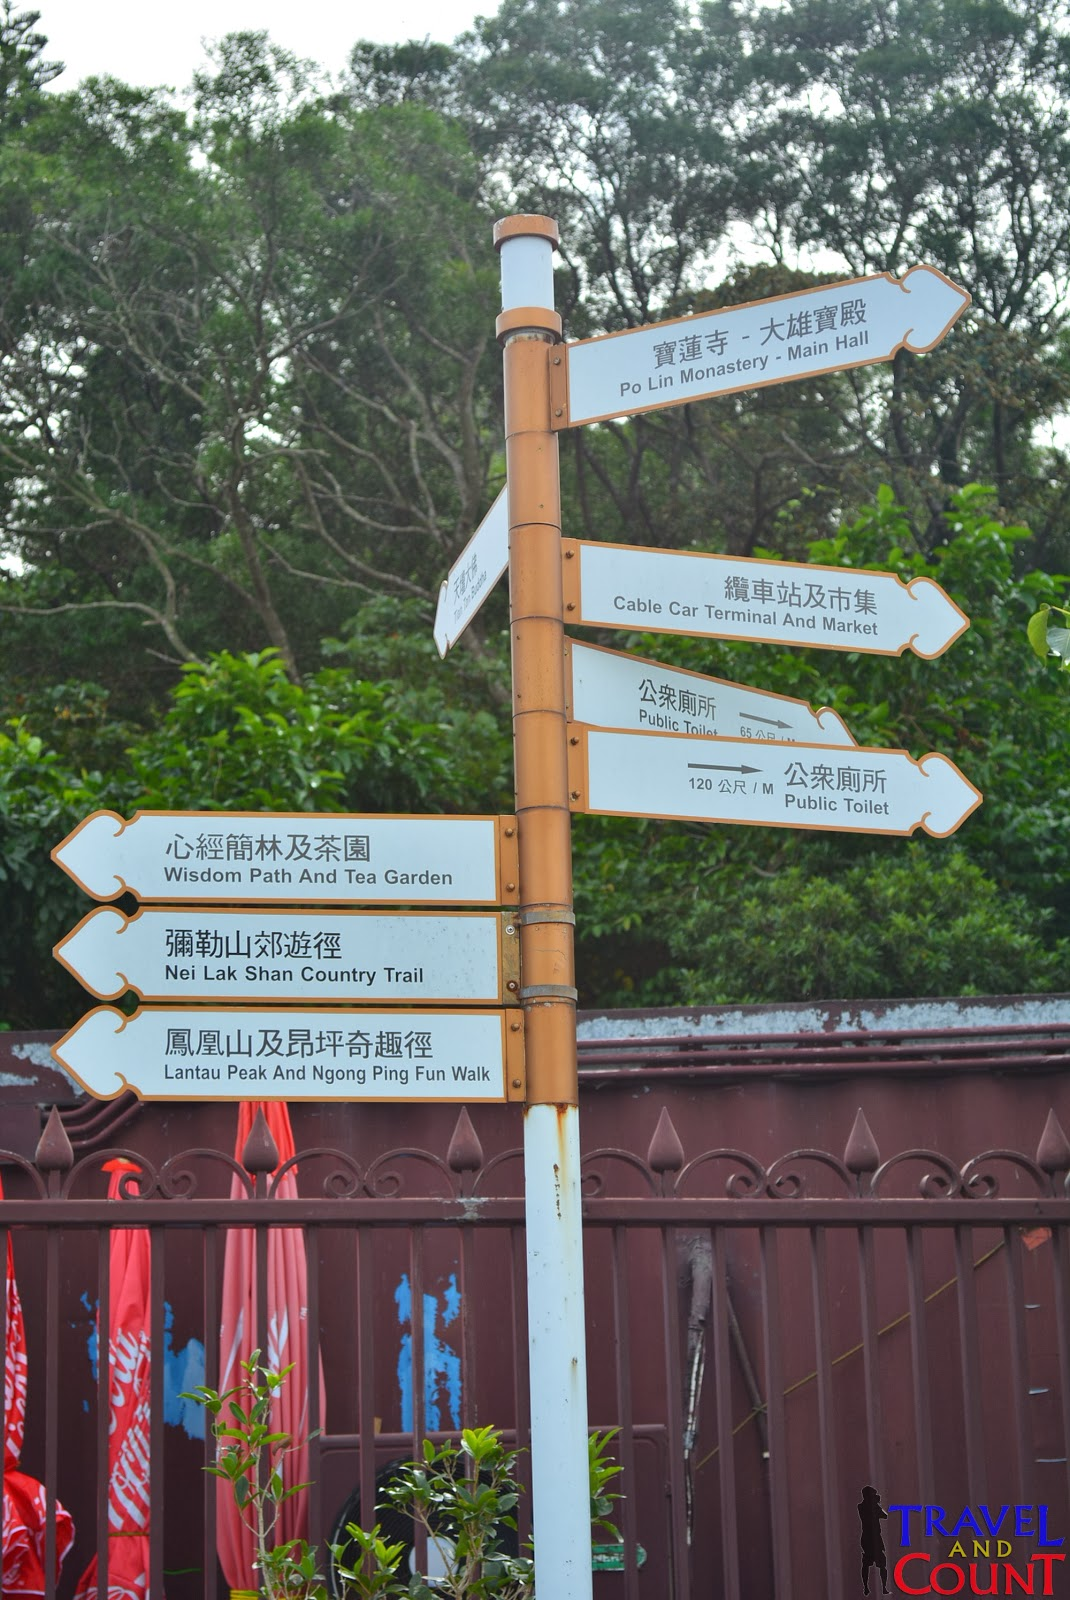 Signboards in Ngong Ping Hong Kong